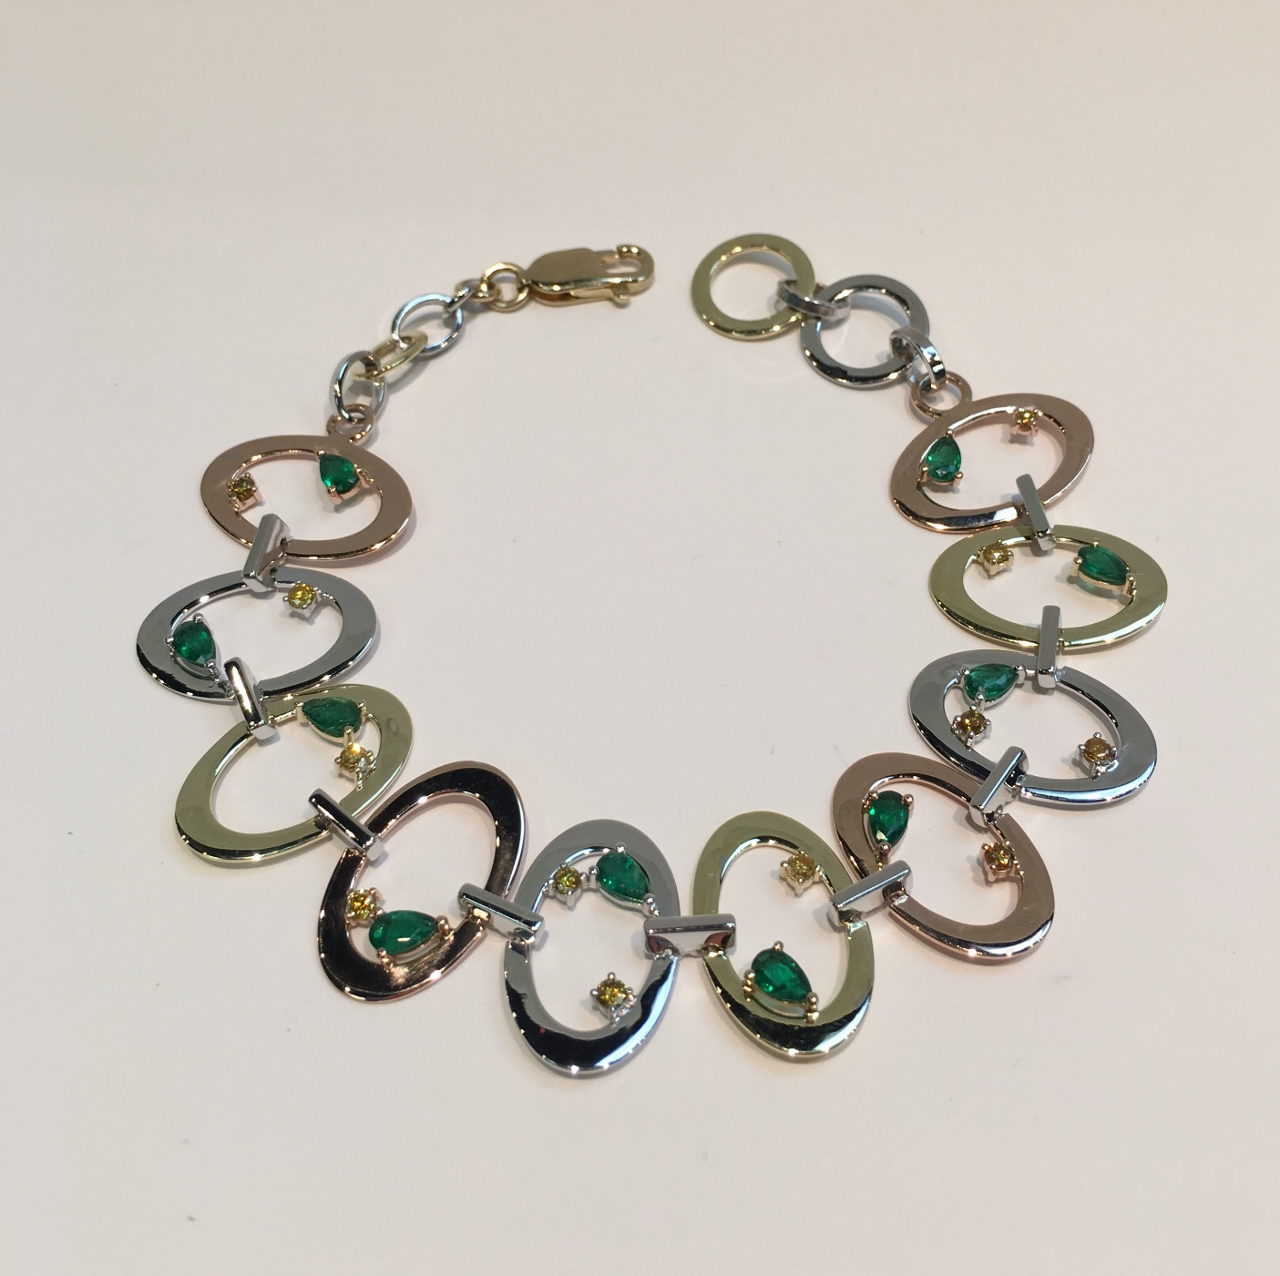 14K Tri-Color Gold Bracelet With Emeralds